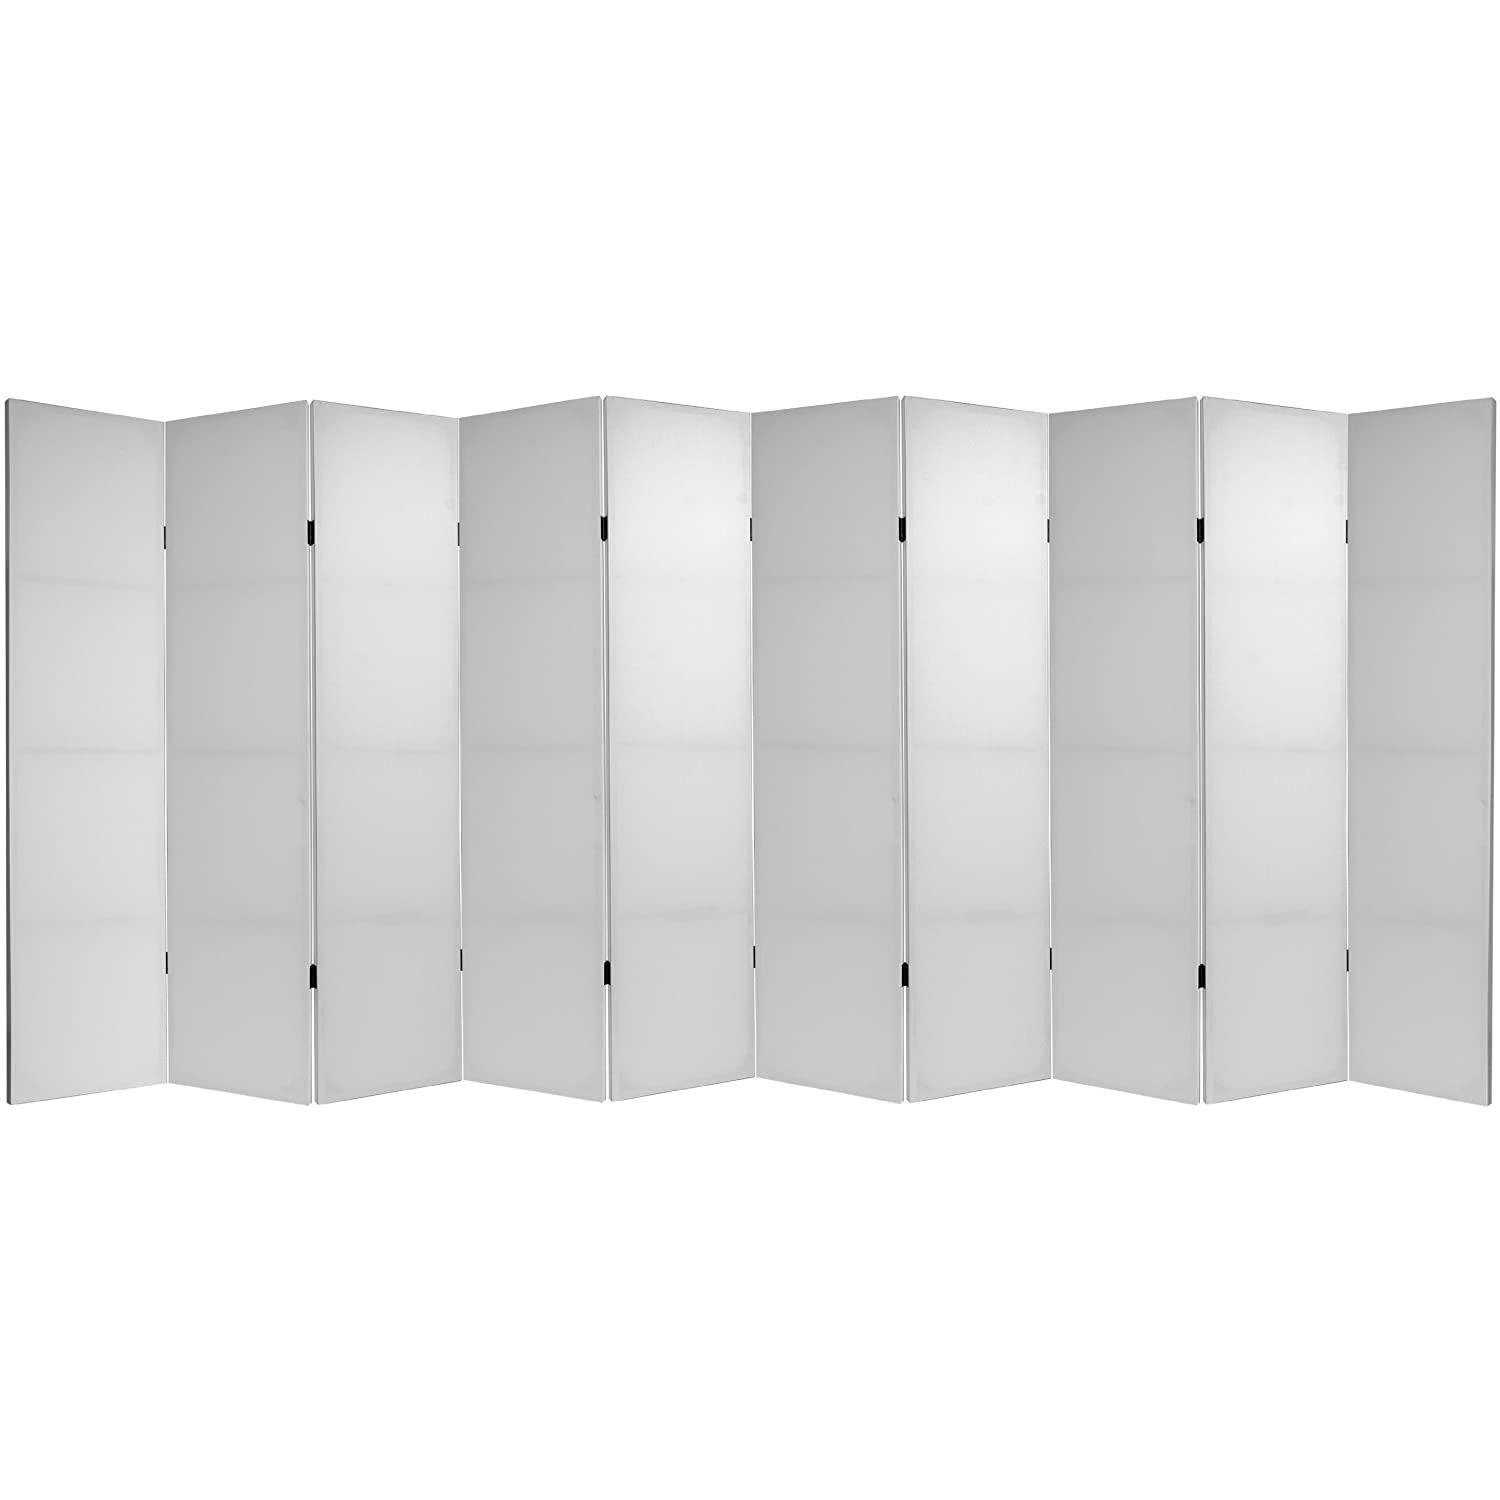 Tall Do It Yourself Canvas Room Divider 4 Panel Oriental Furniture 6 ft